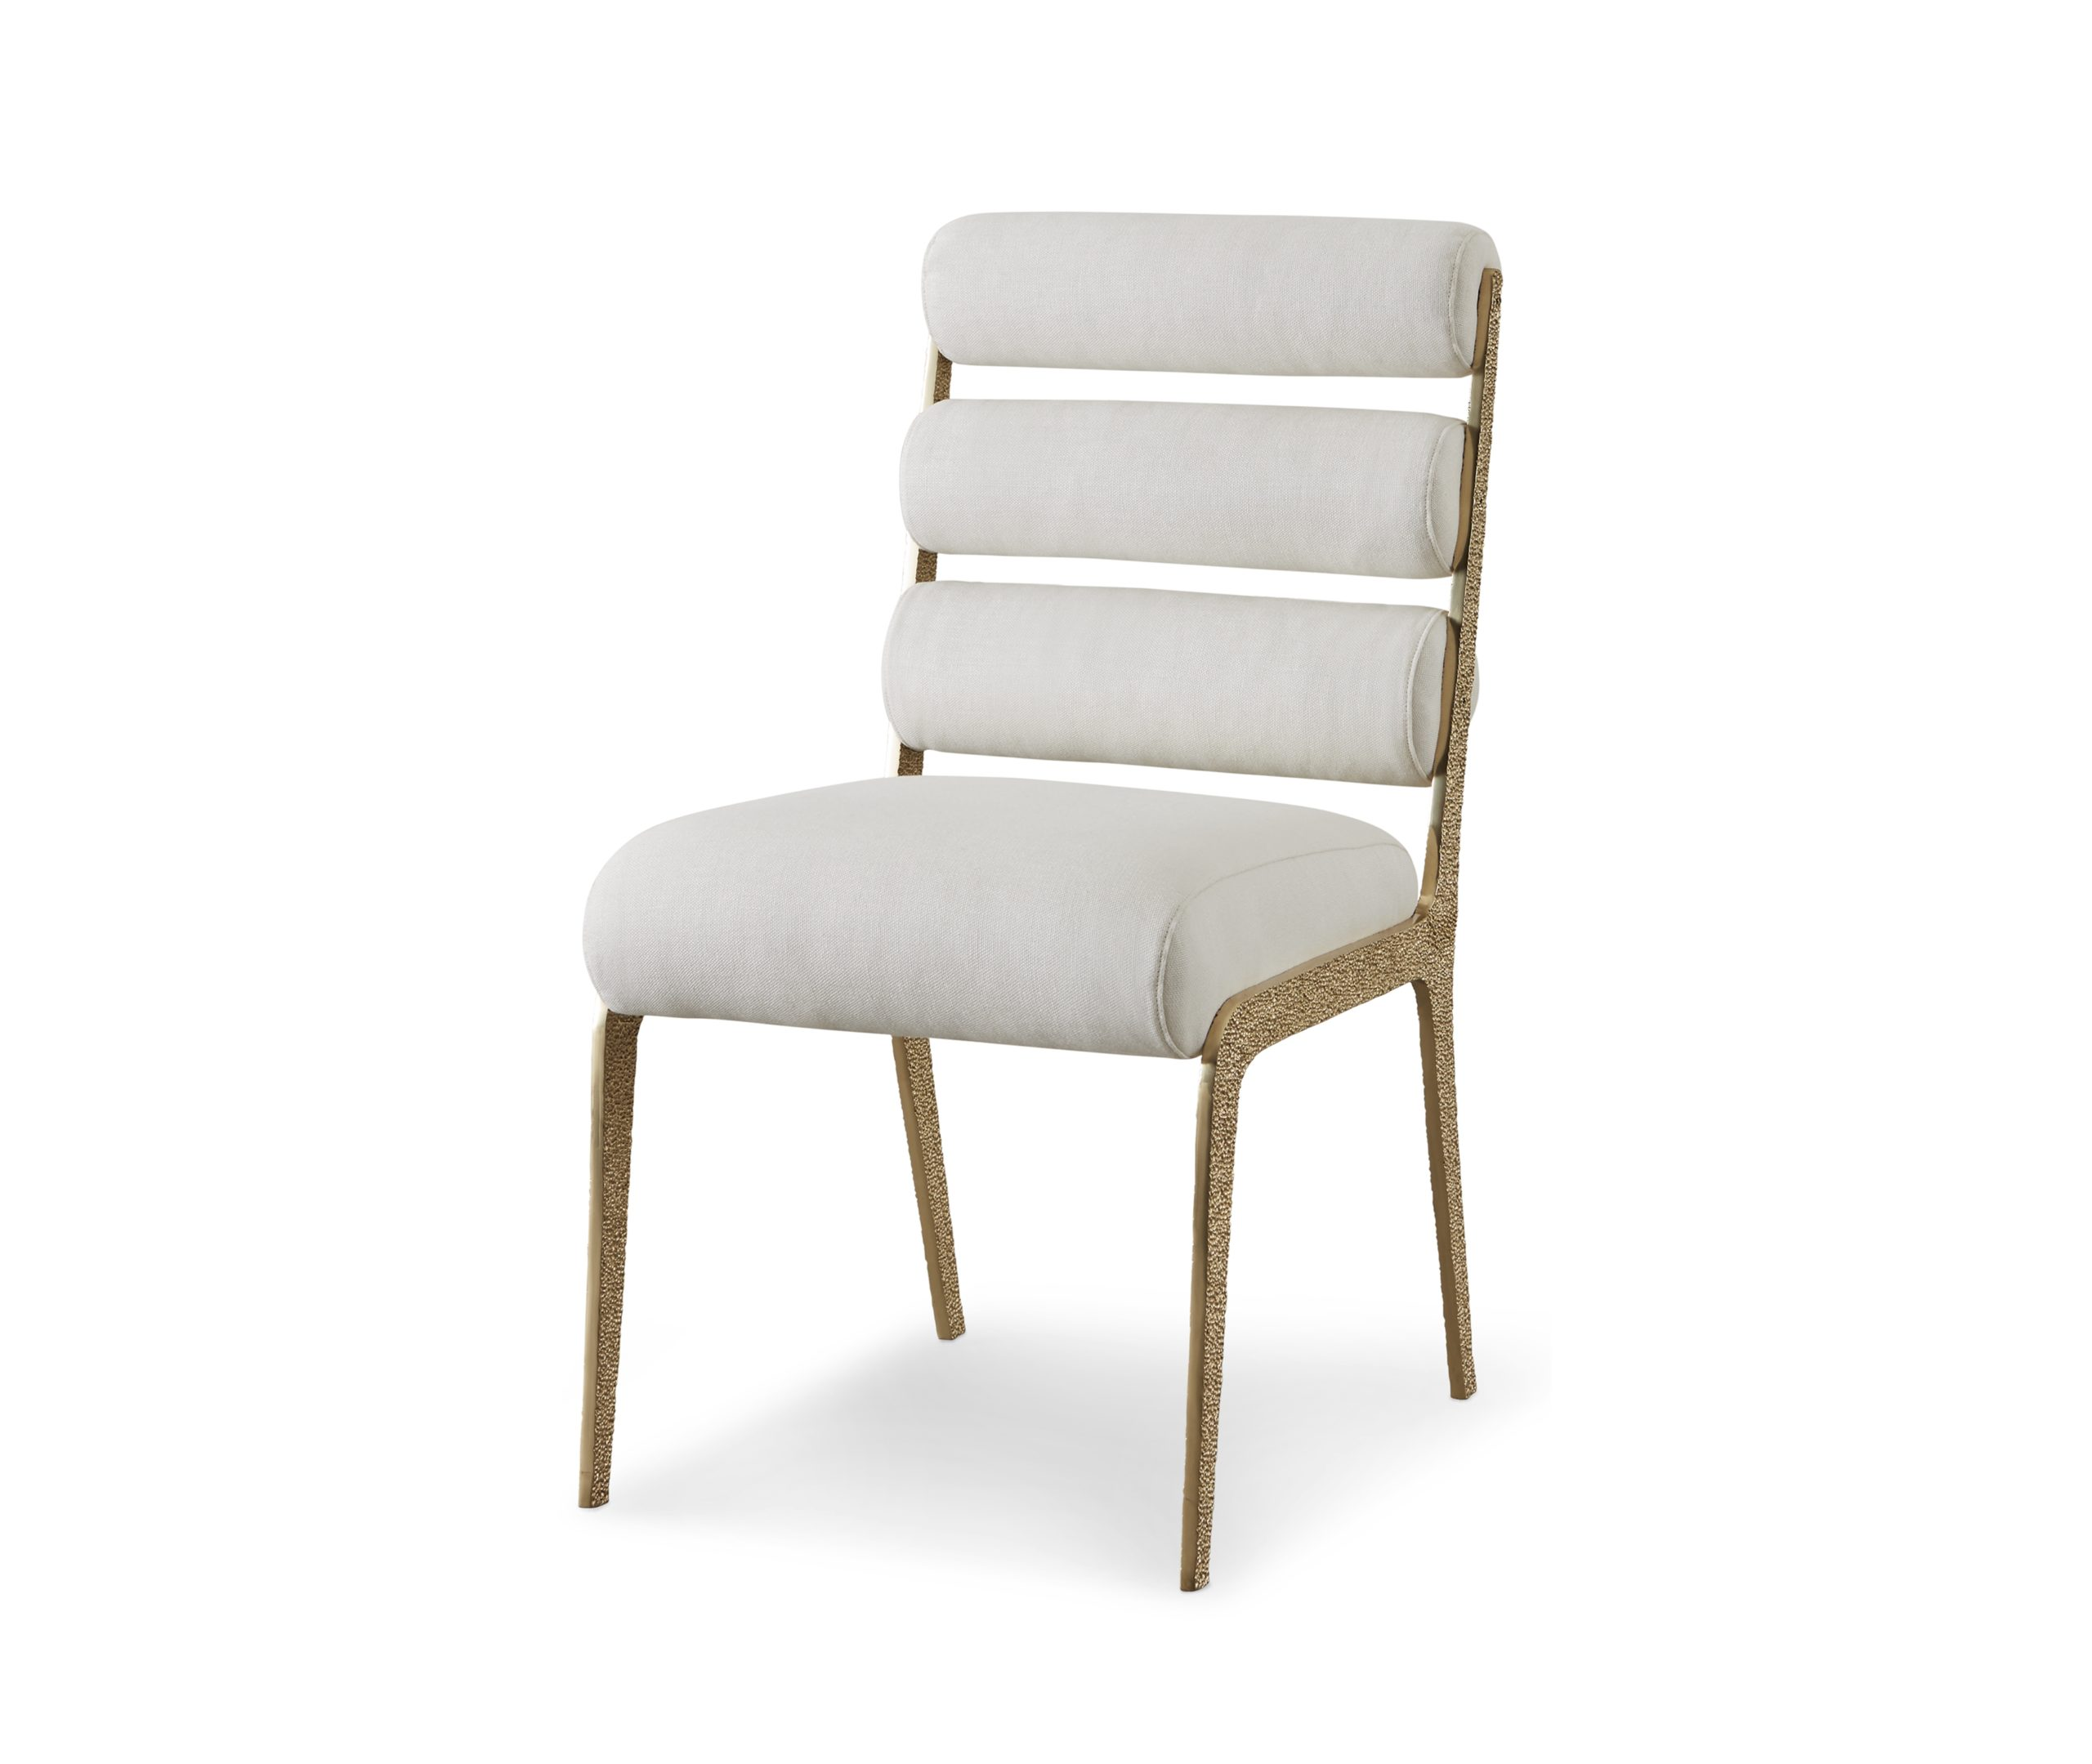 Baker_products_WNWN_lucca_chair_BAA3043_FRONT_3QRT-scaled-2